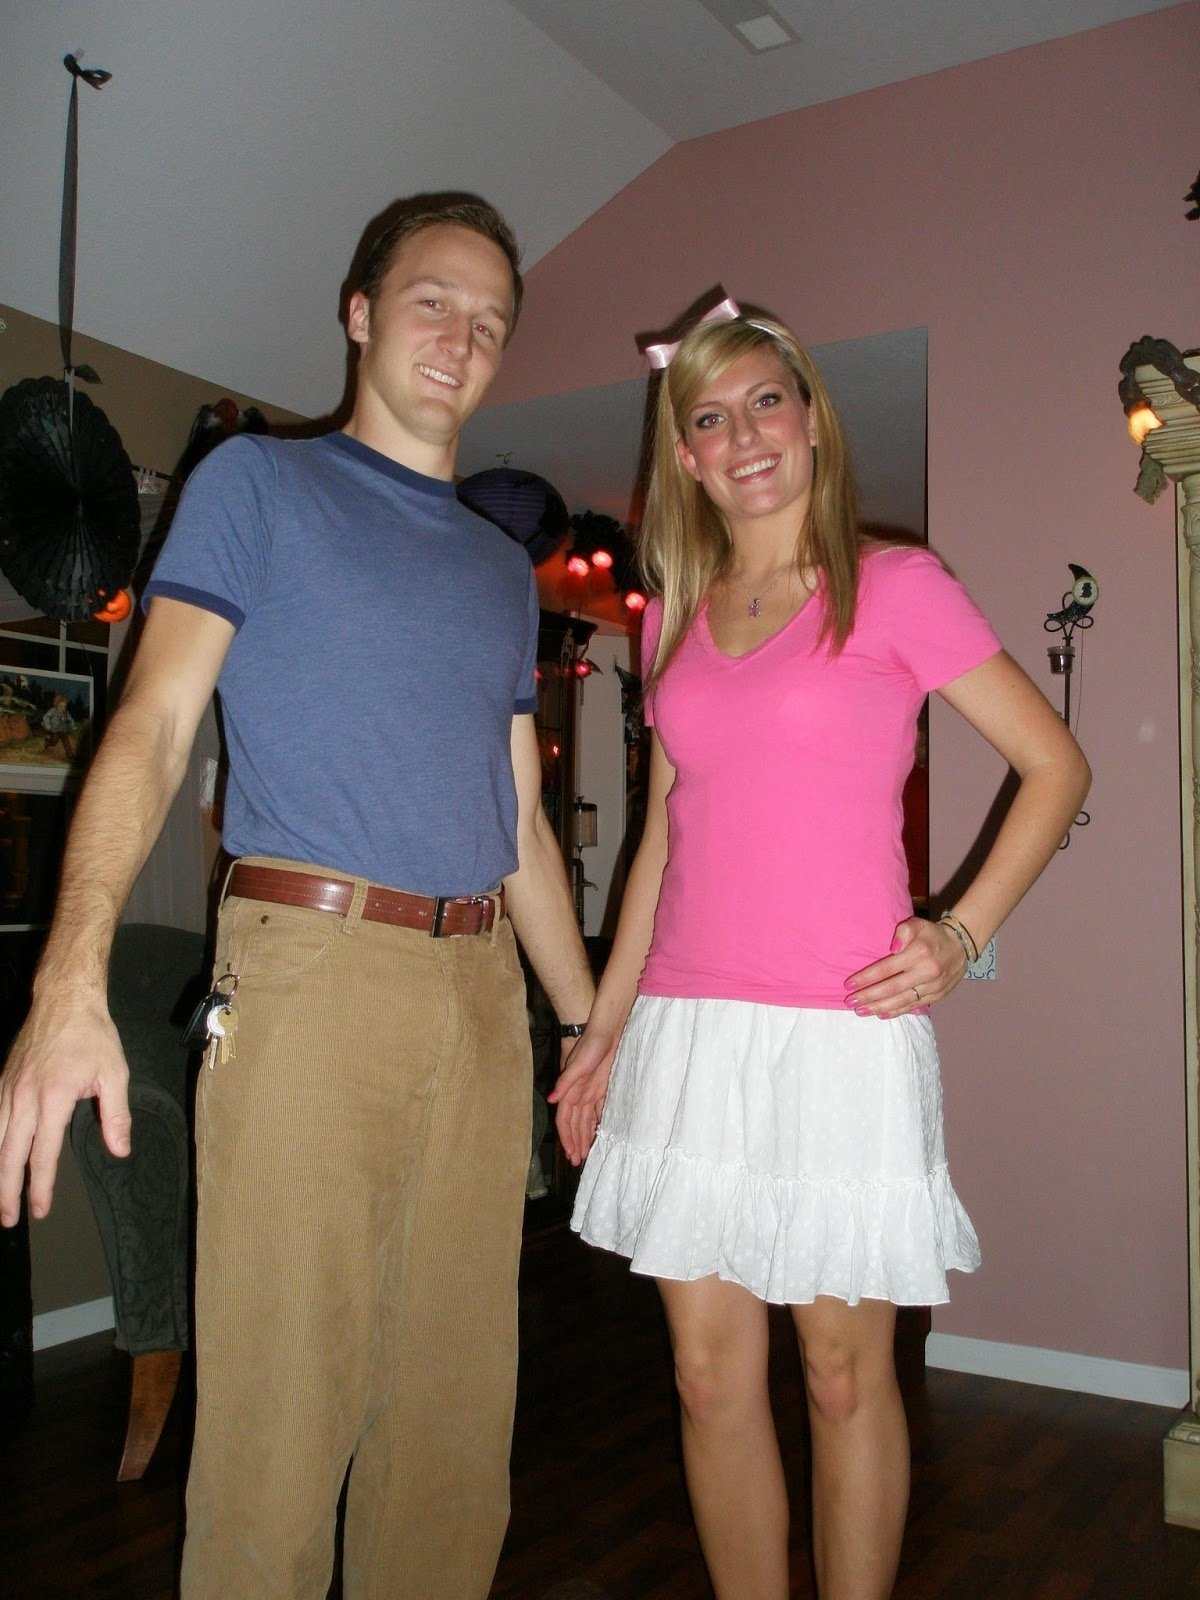 10 Most Recommended Homemade Halloween Costume Ideas For Couples 57 couples diy costumes top 10 tuesdays funny costumes halloween 5 2020